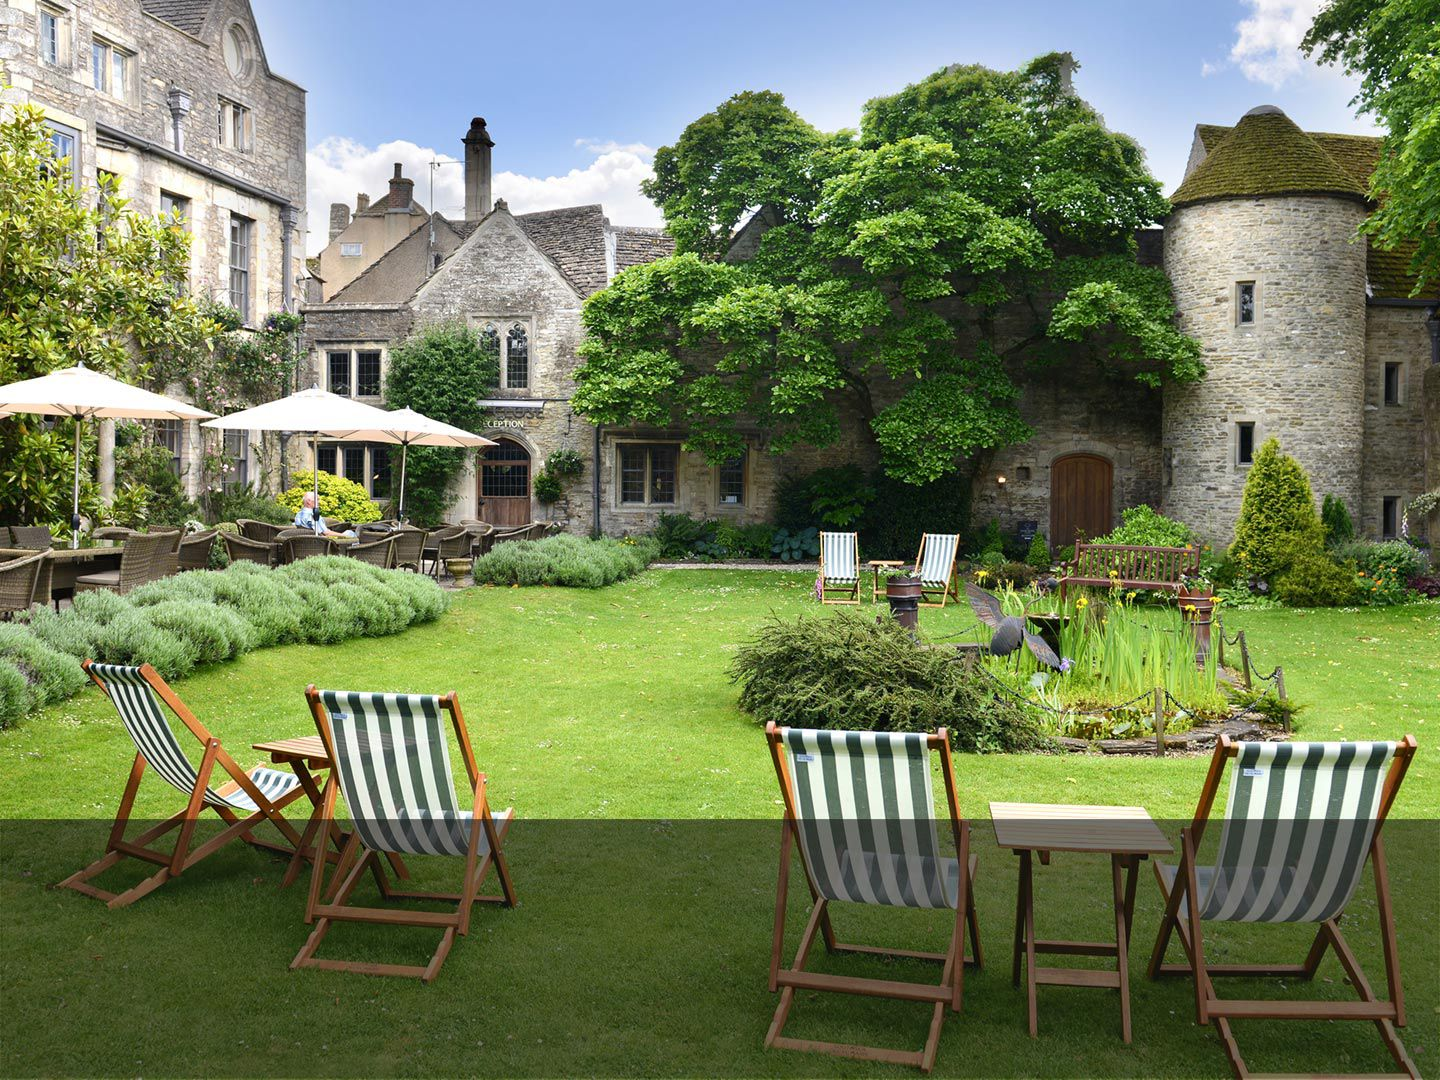 THE CLOSE, COTSWOLDS, UNITED KINGDOM